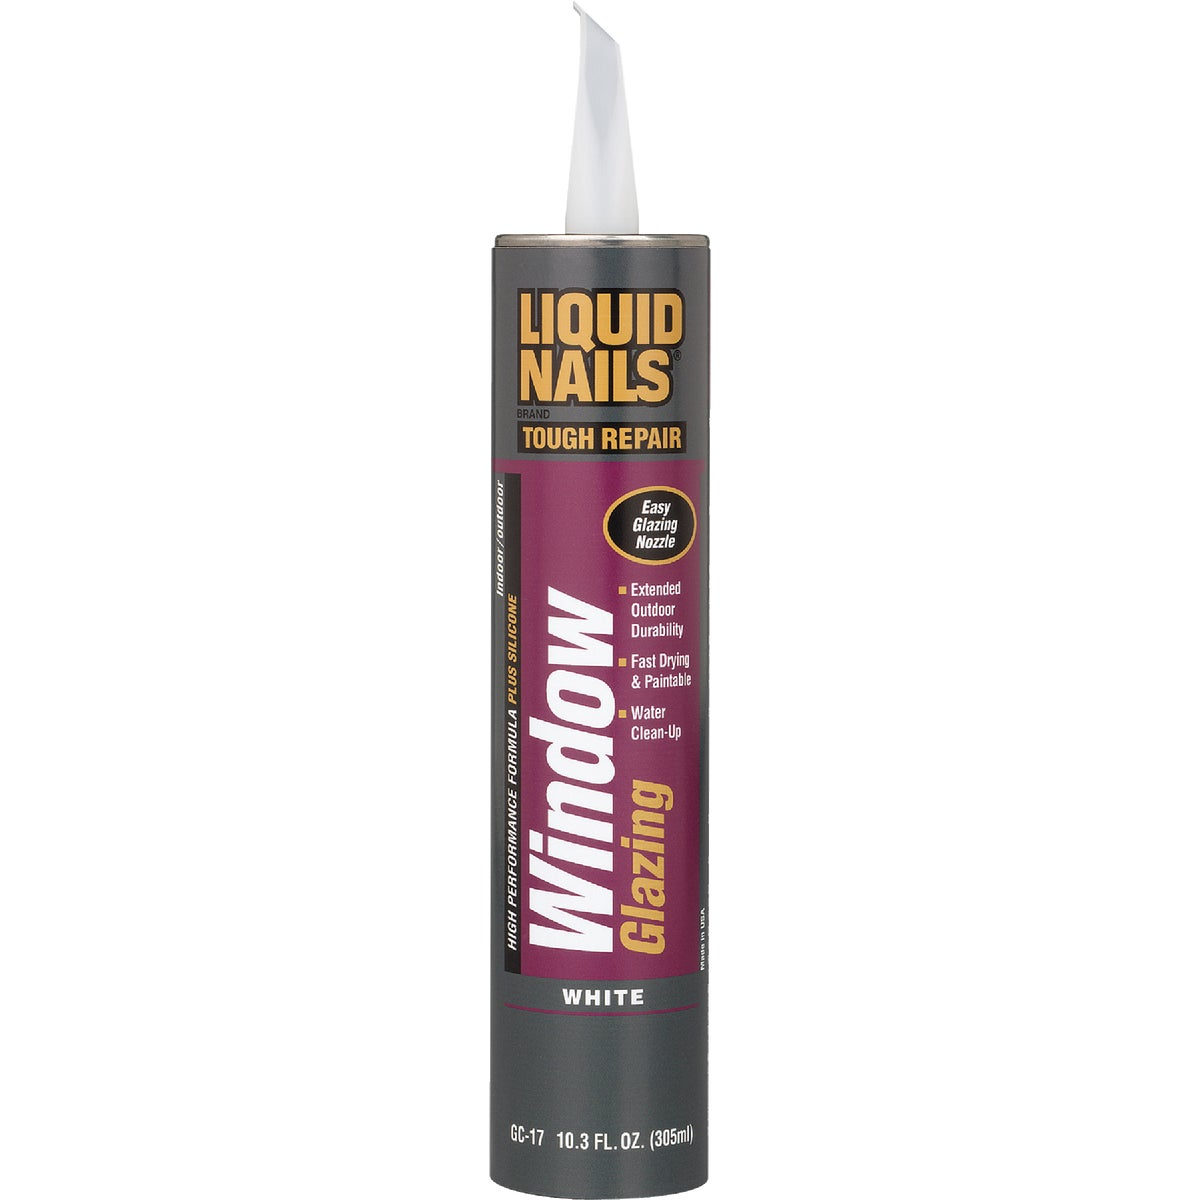 WHT LATEX WINDOW GLAZING - GC-17 by Liquid Nails/akzonob